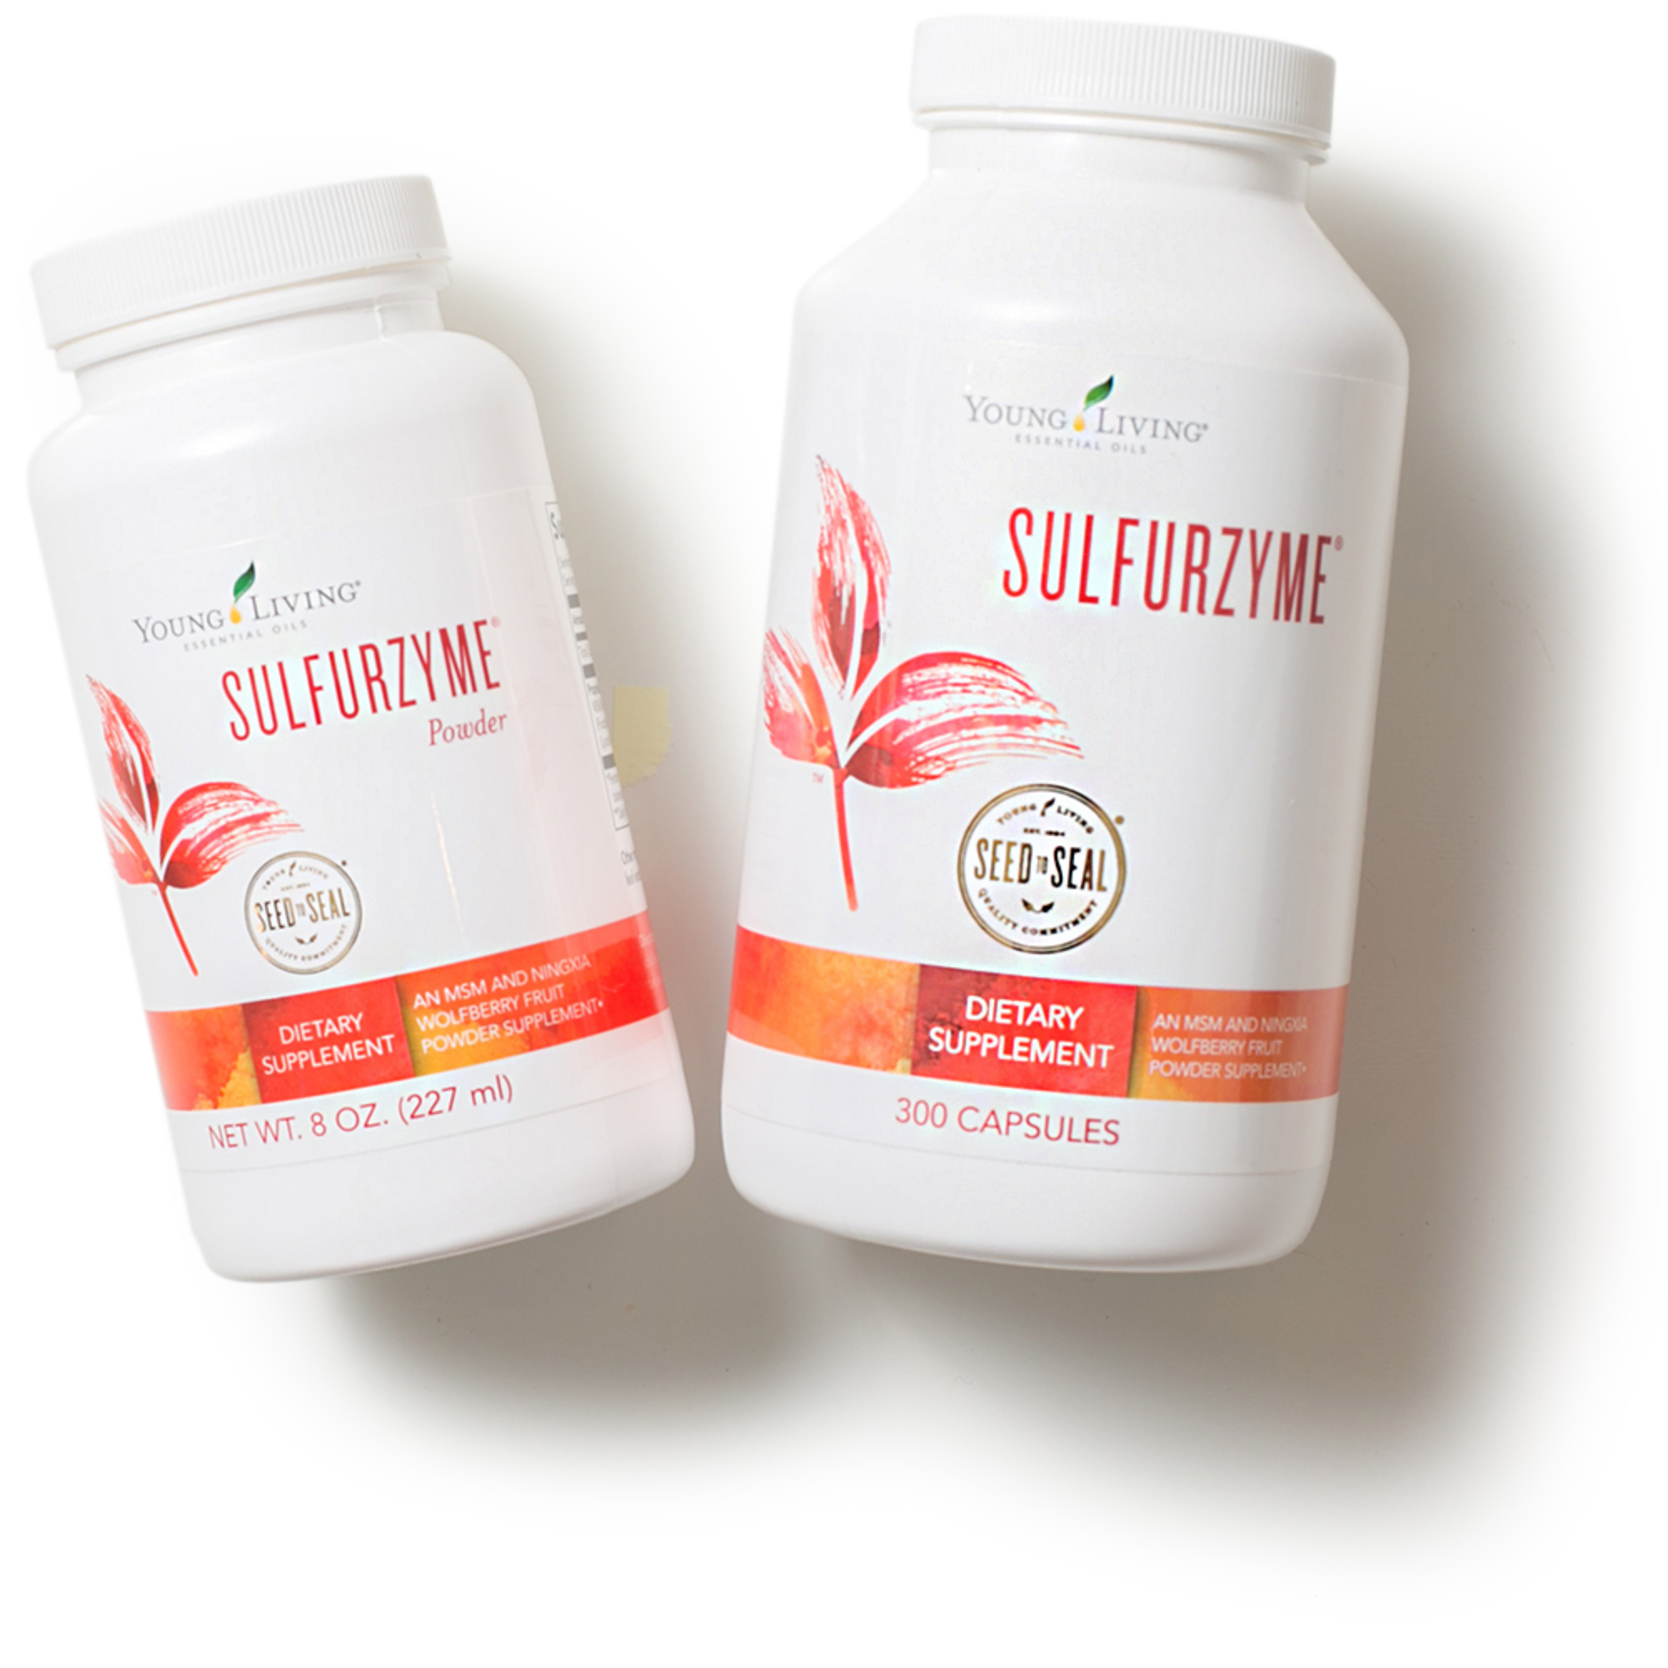 Sulfurzyme Capsules or Powder